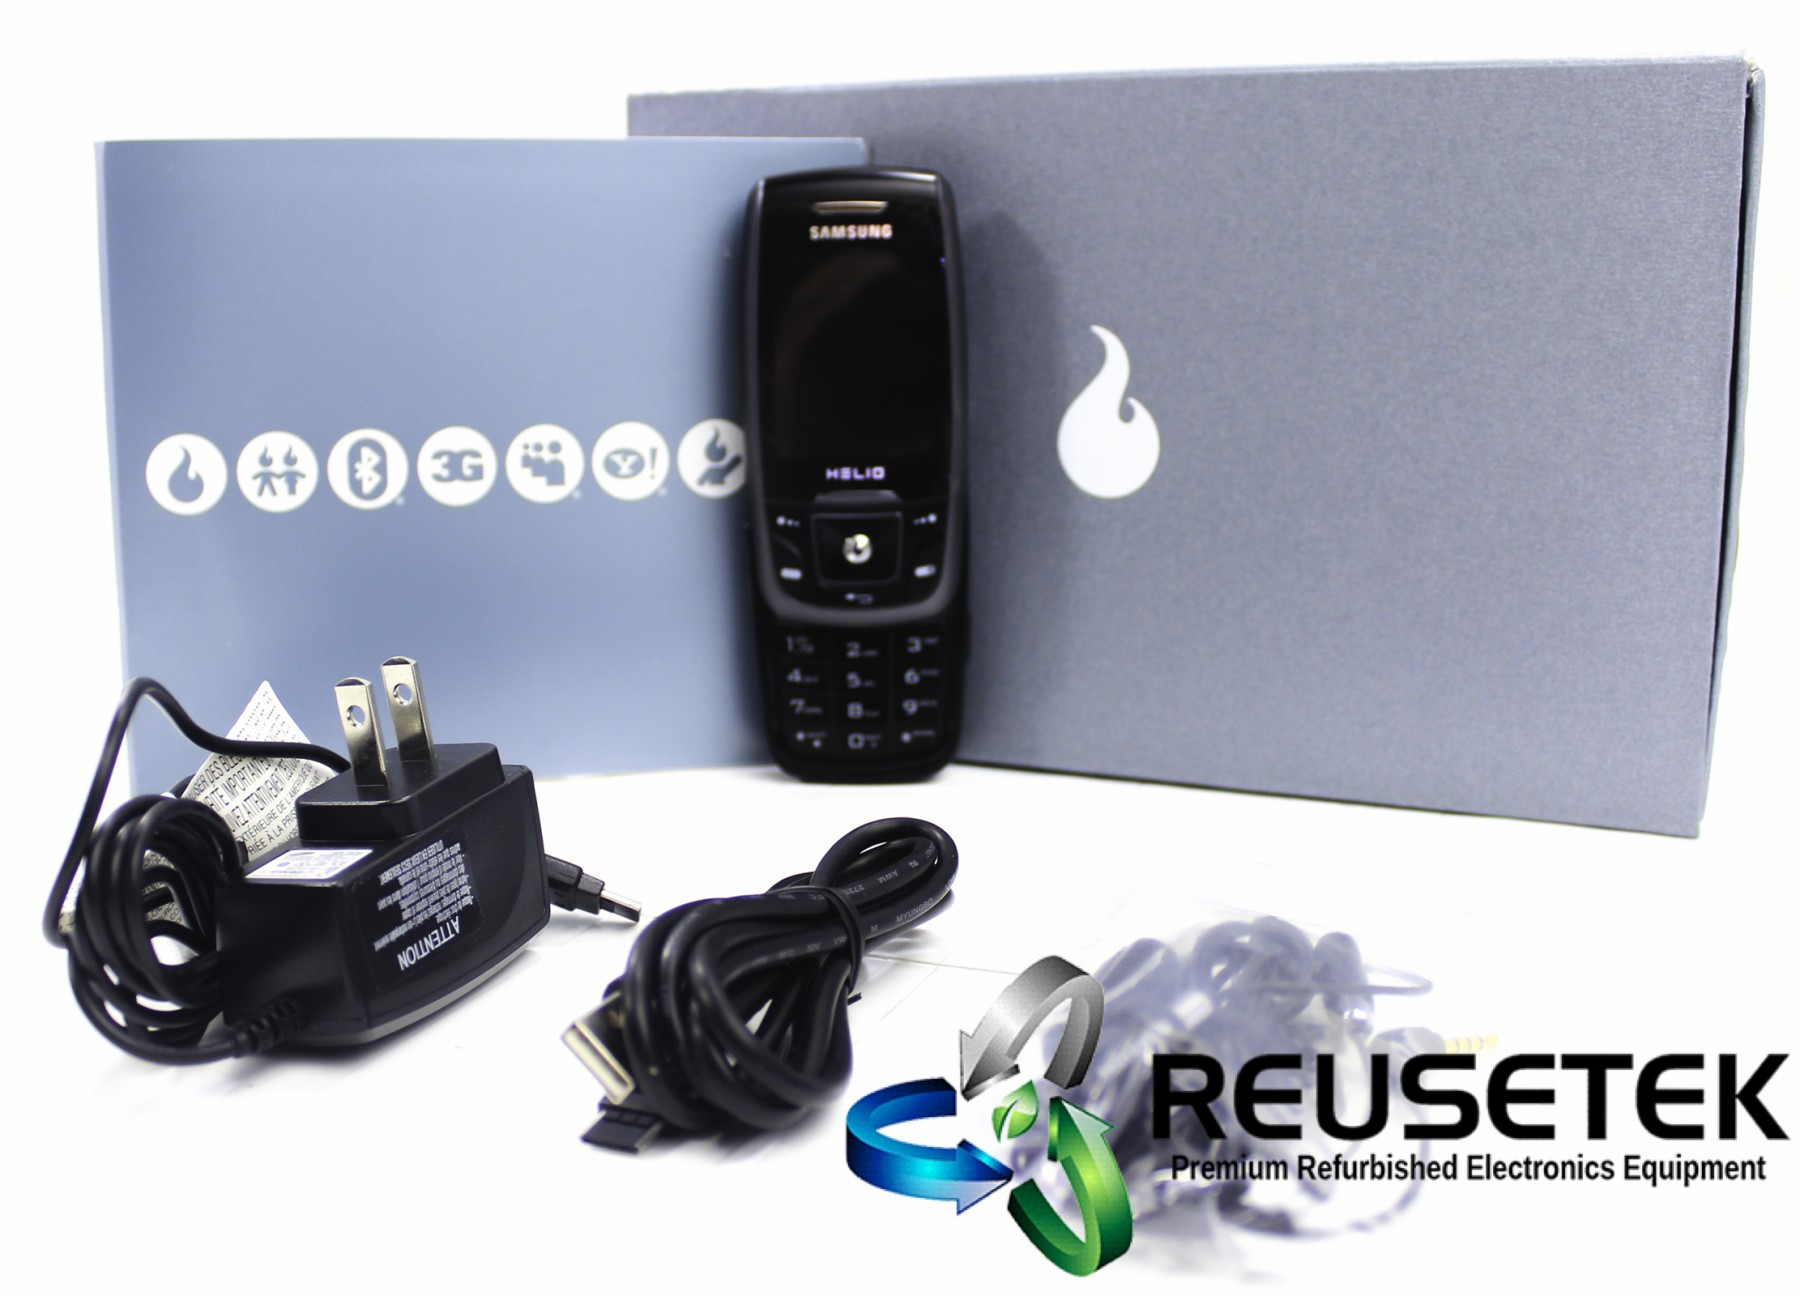 5000317696079954-Samsung SPH-A503 Helio Drift Set GH69-04548 Virgin Mobile Cell Phone-image